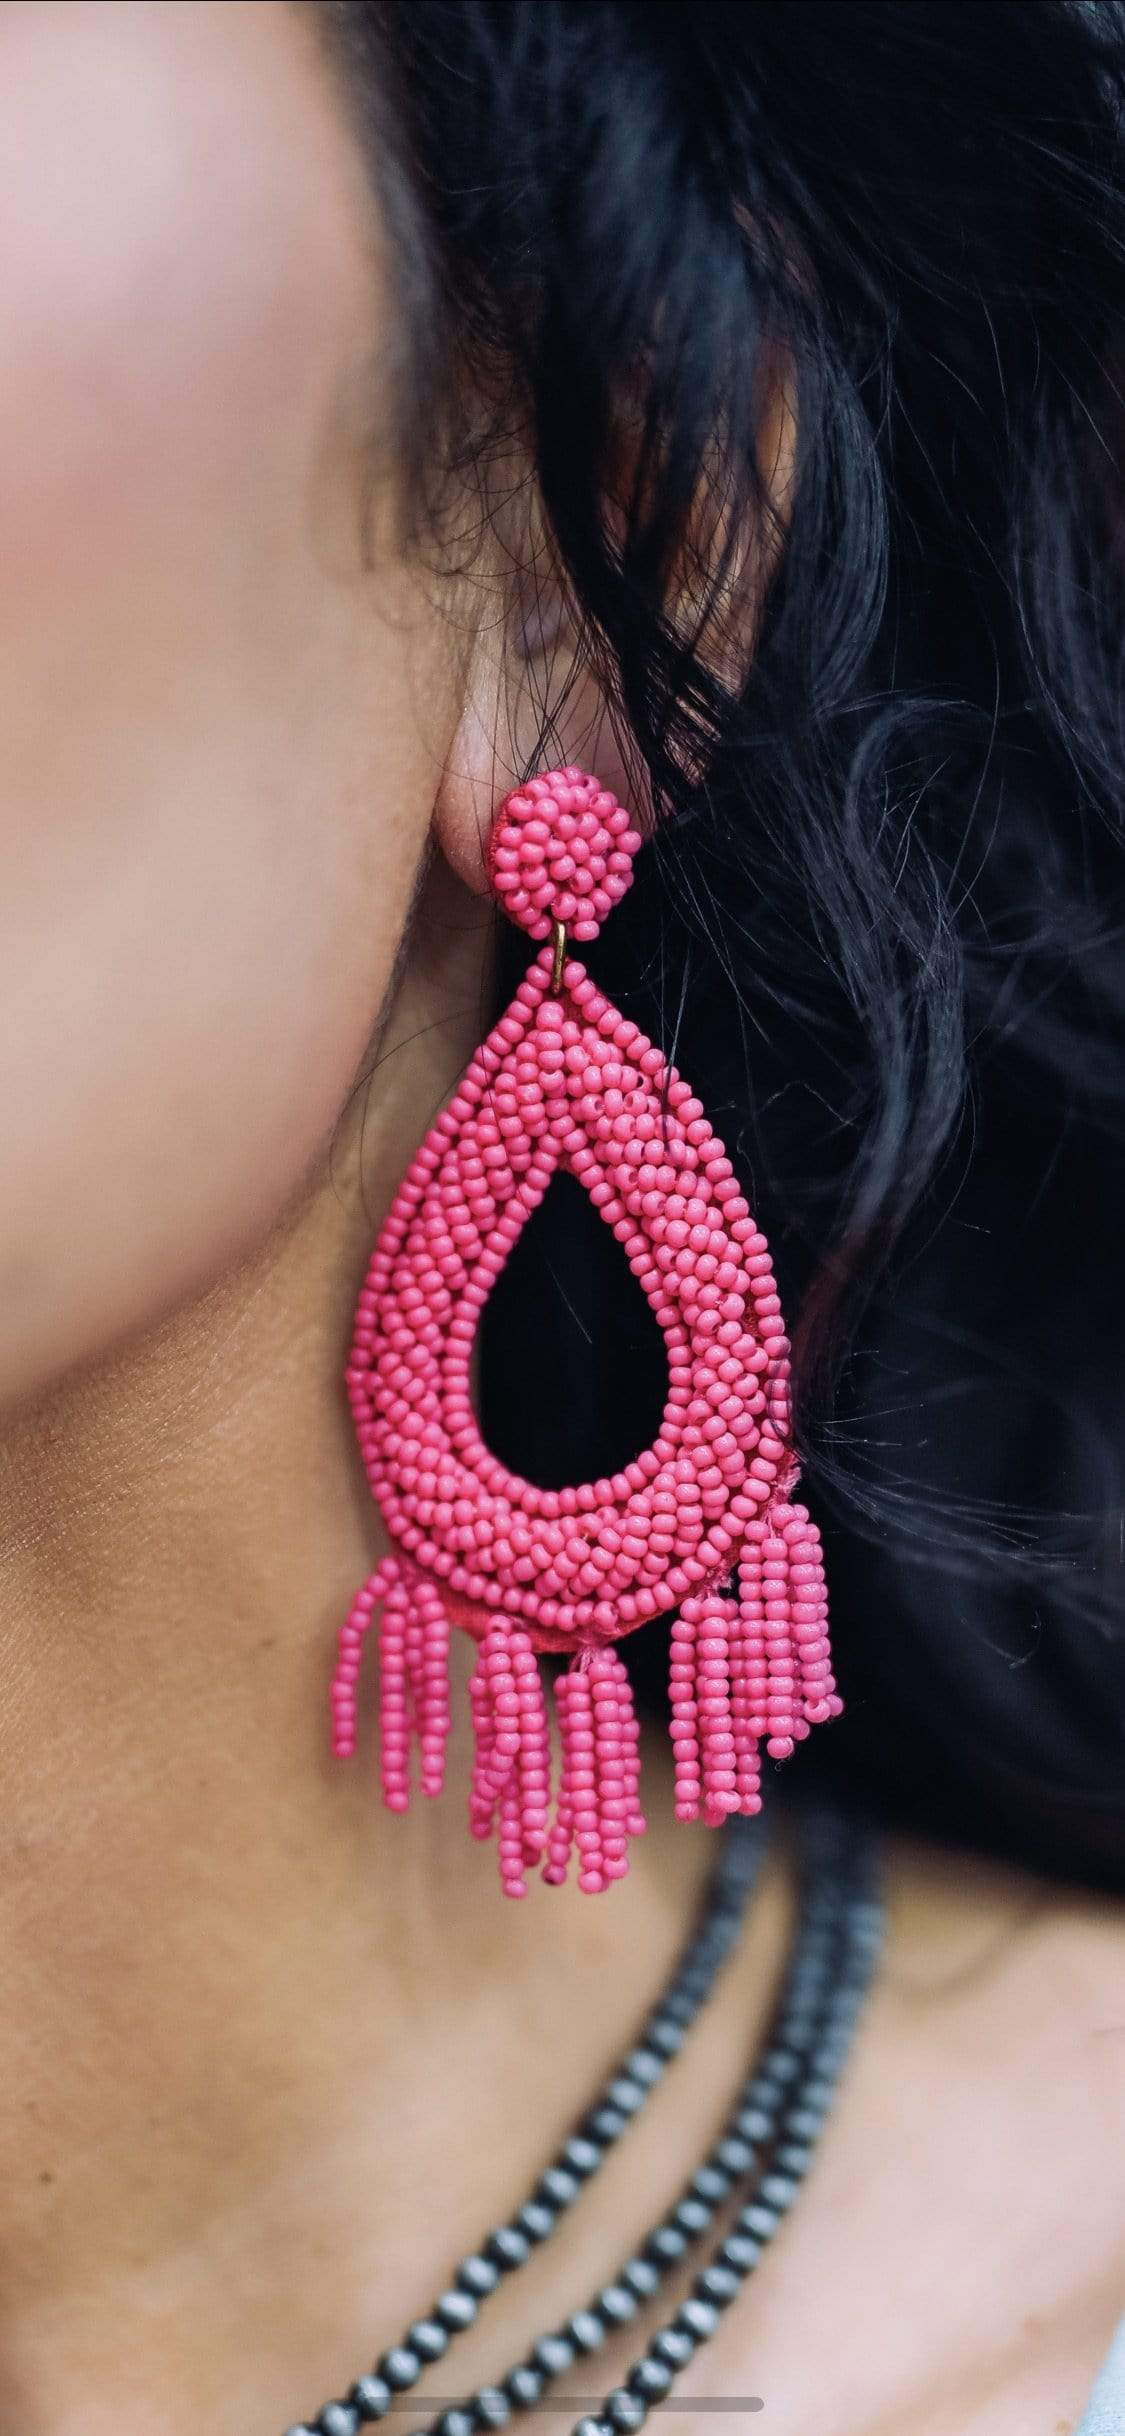 Accessorize In Style Fashion Earrings Beaded Post Earrings with Tassels - Hot Pink